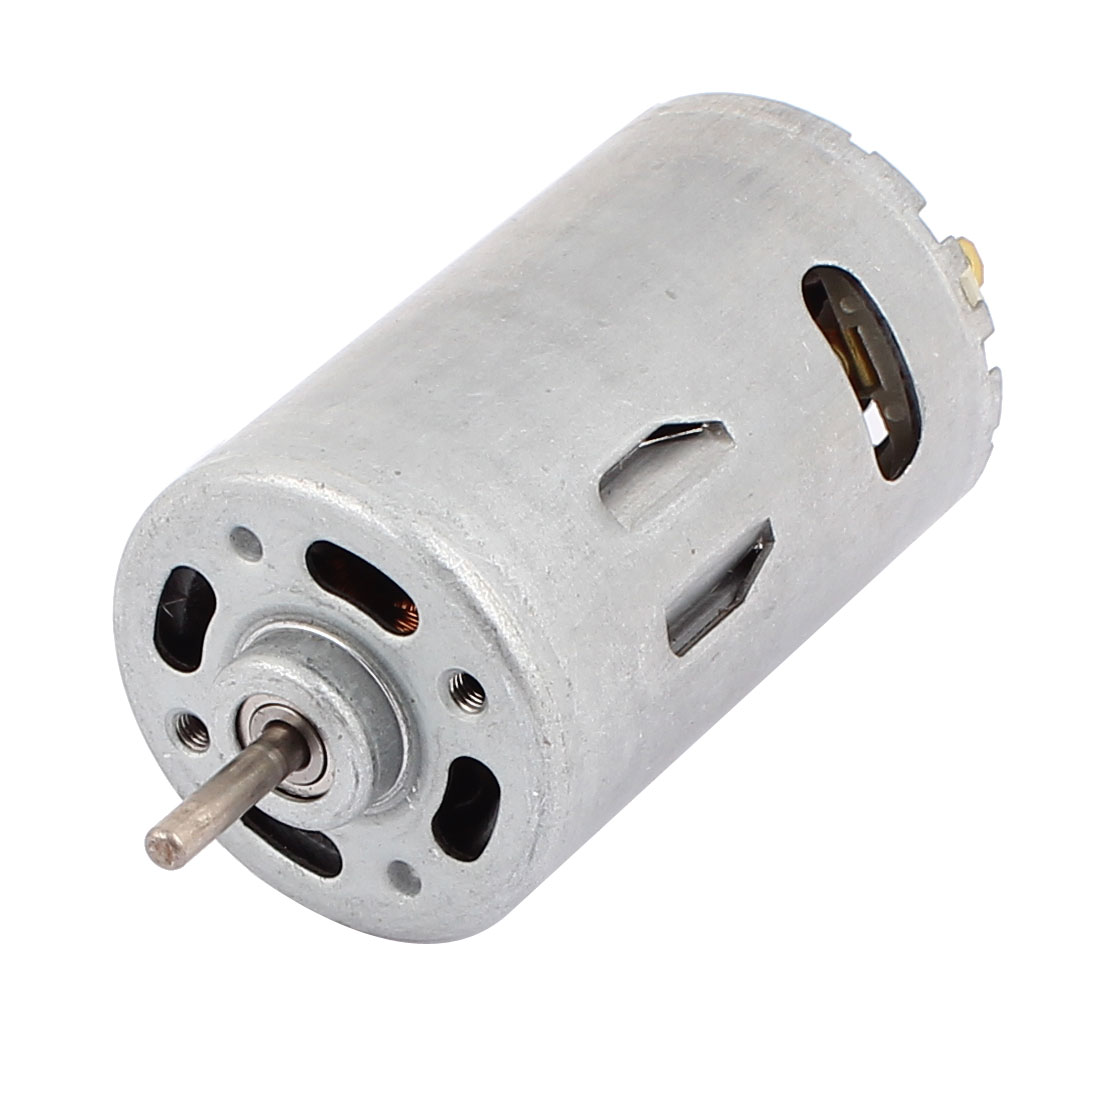 DC 12-24V 5500RPM Mini Magnetic Motor for Smart Cars DIY Toys